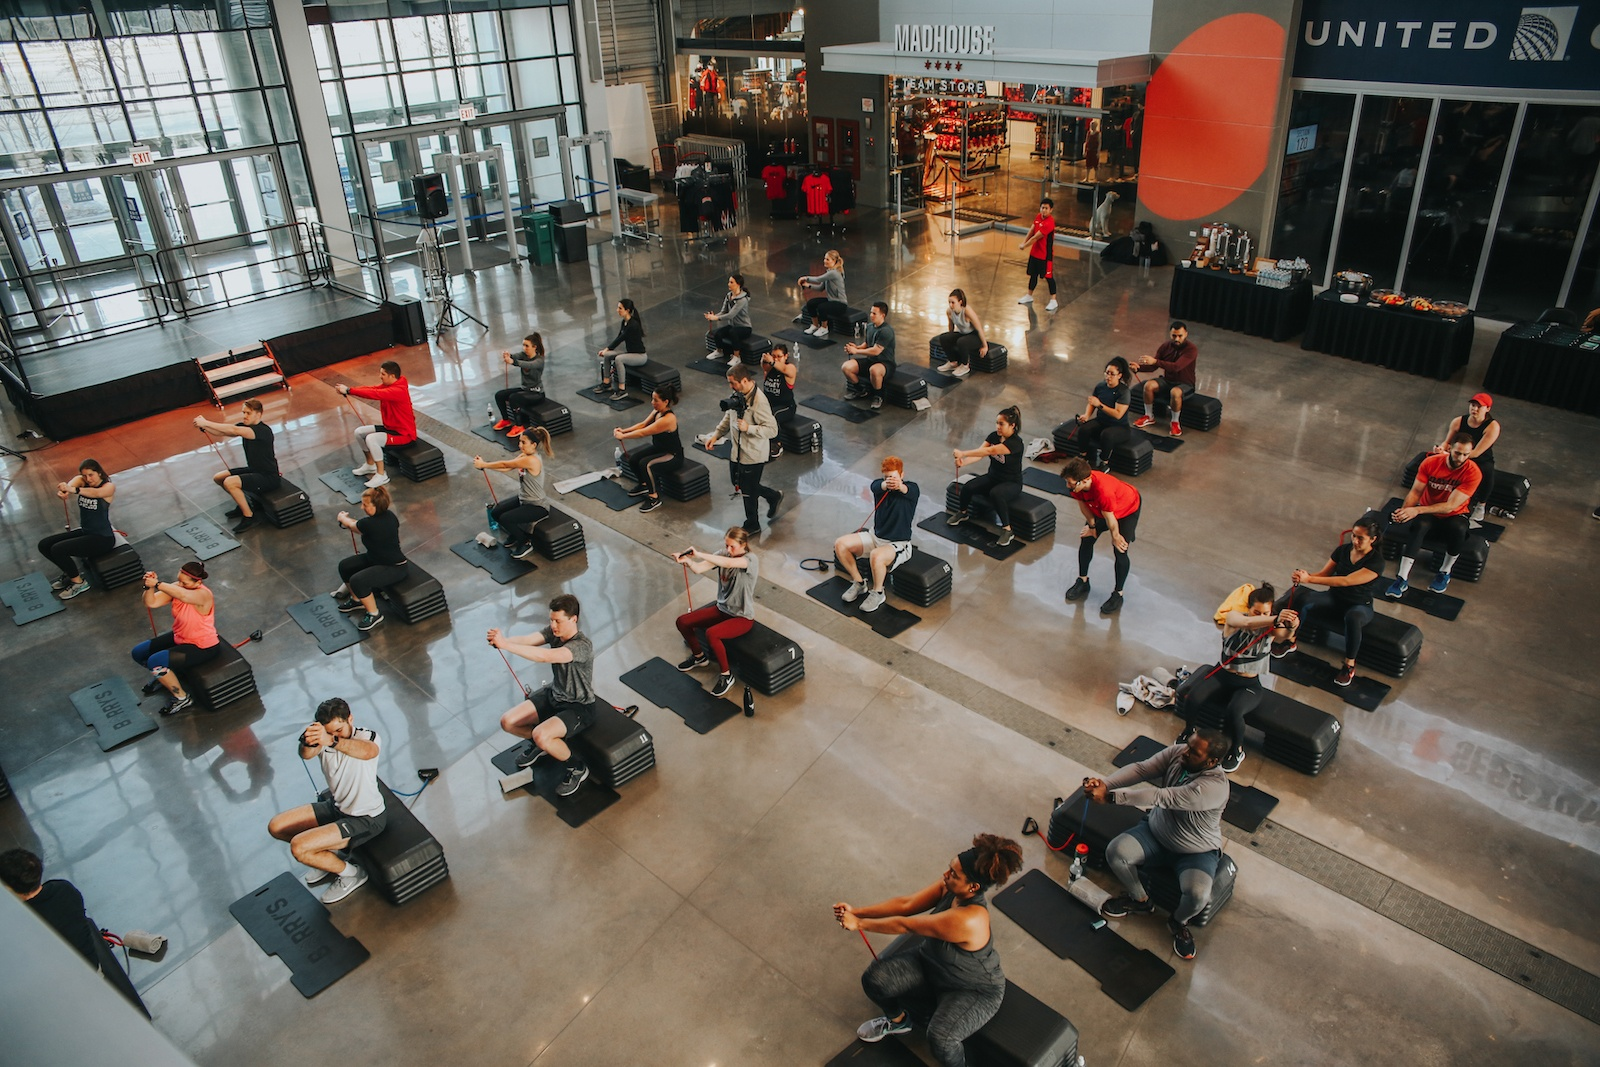 Barry's Bootcamp class in atrium of United Center in Chicago sitting on step up blocks while pulling resistance bands across their chests